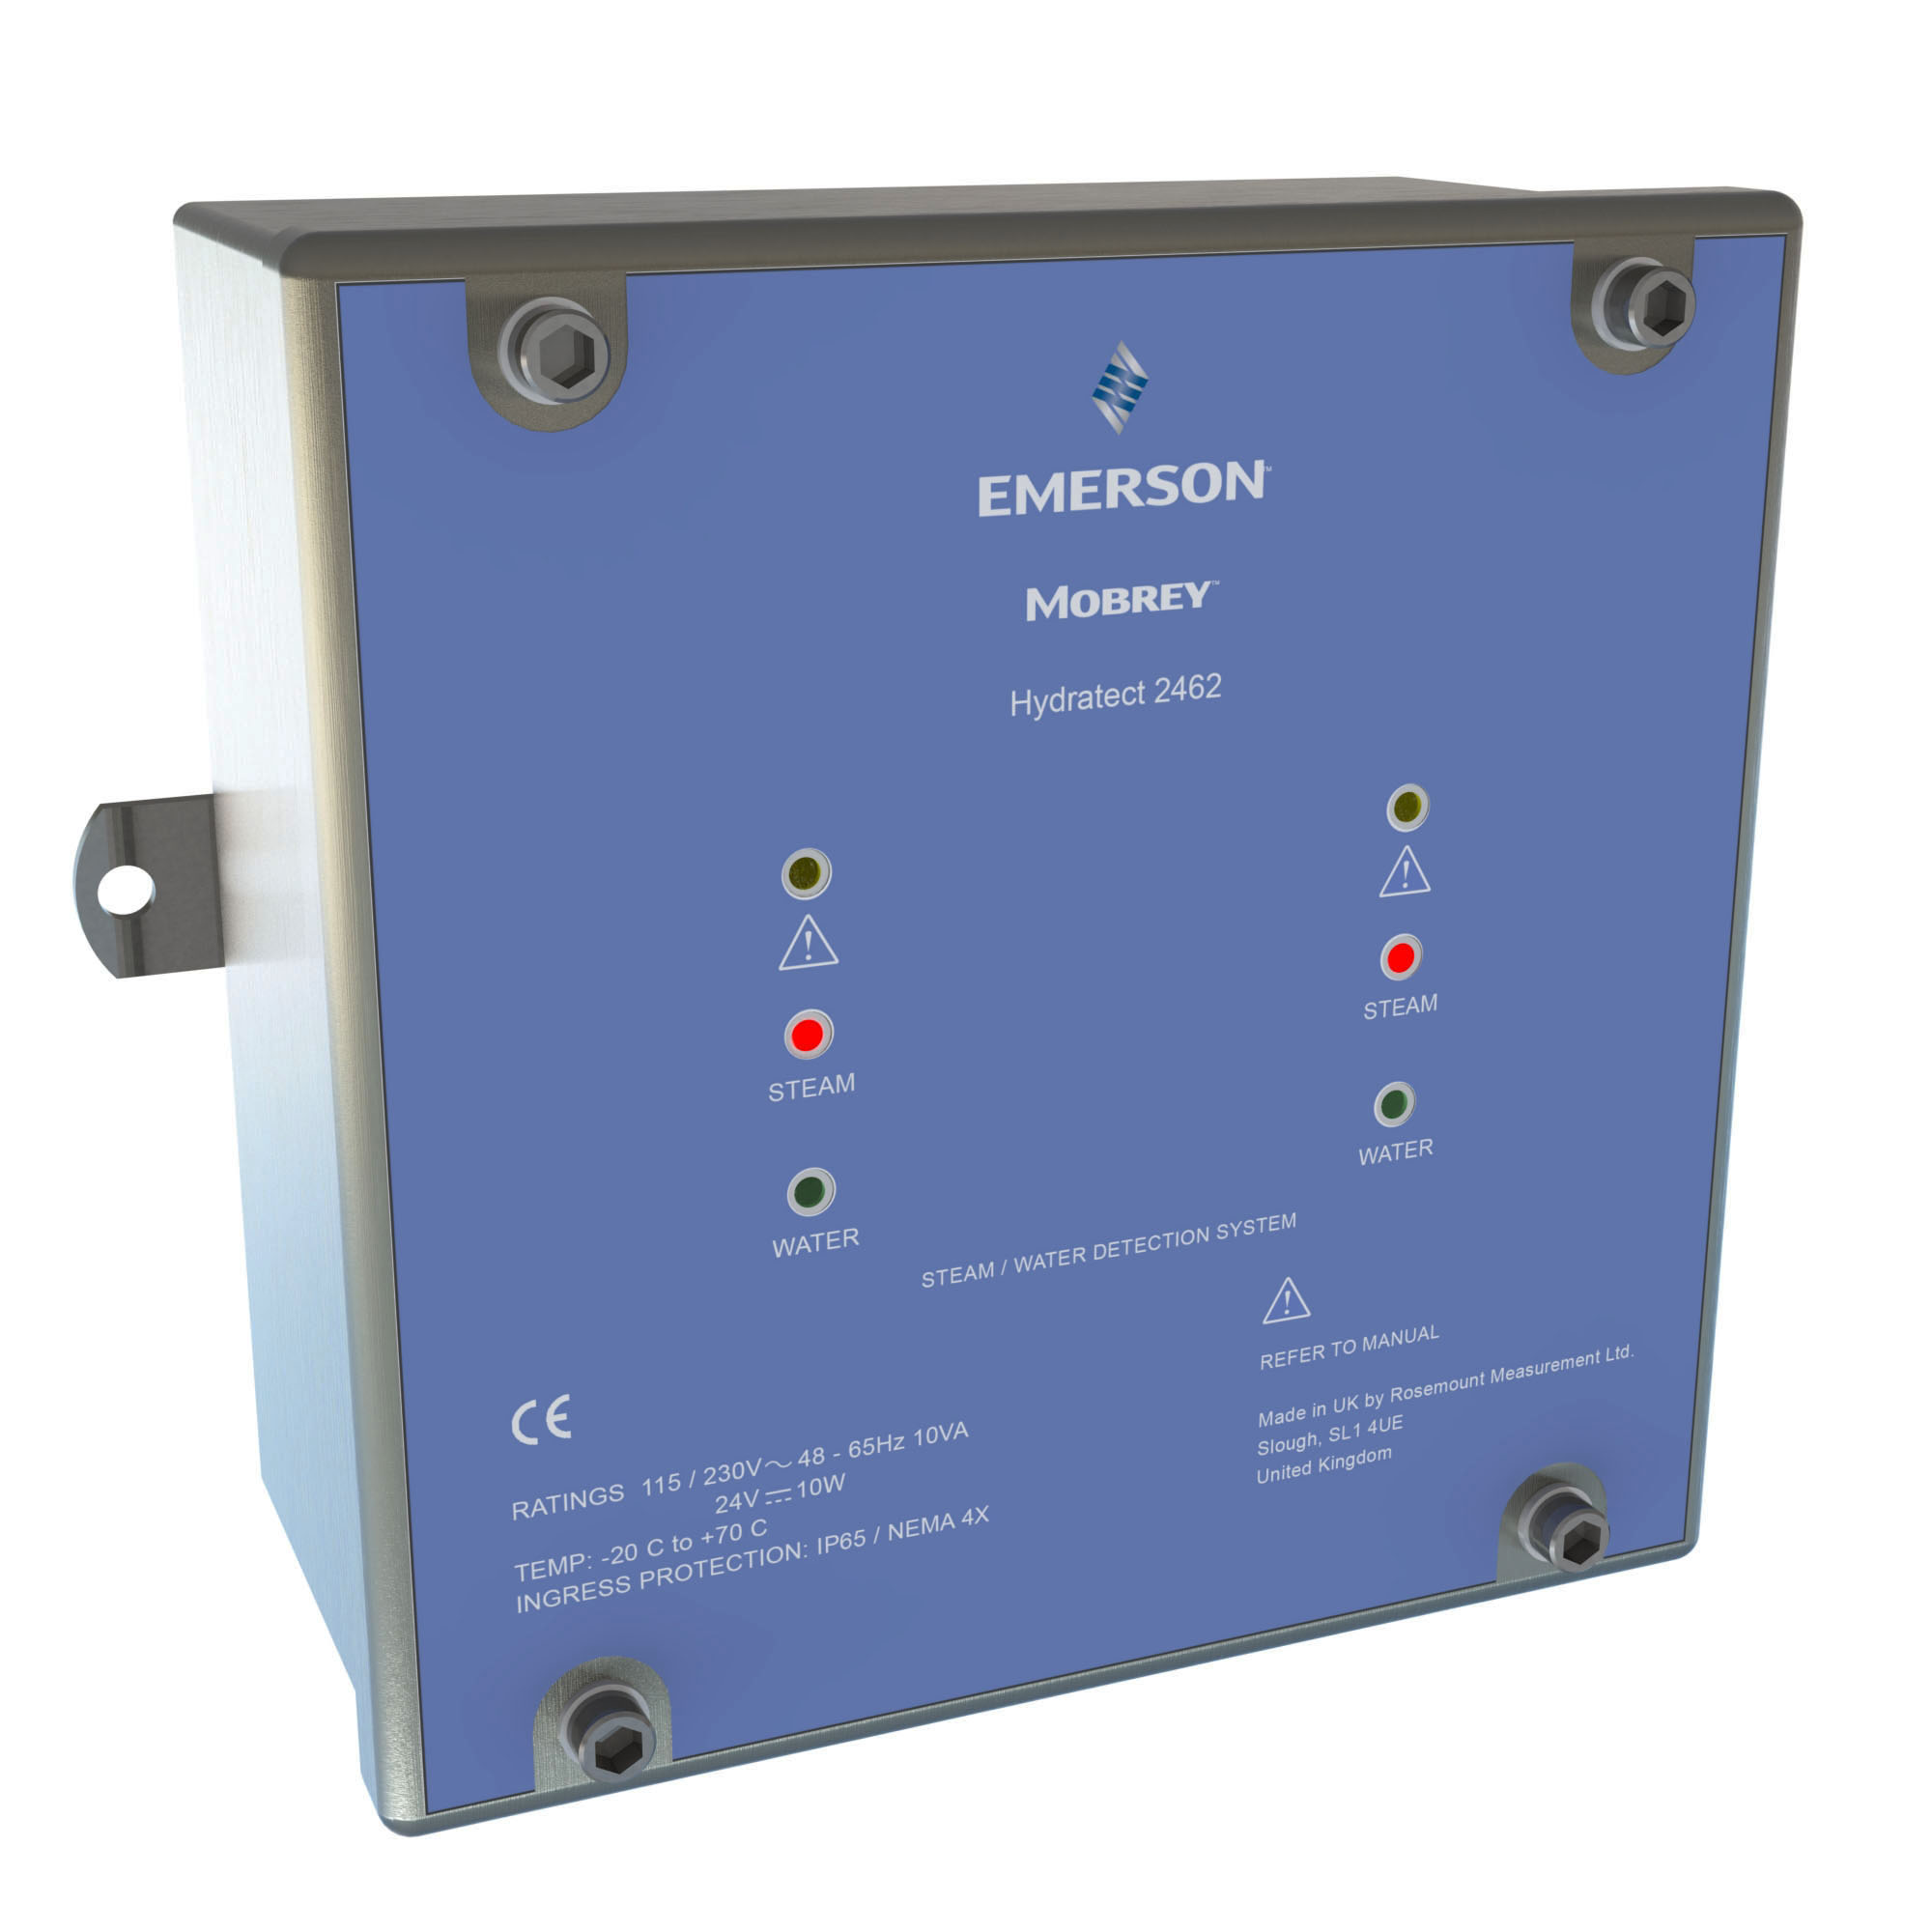 Emerson earns SIL 3 certification for Mobrey Hydratect 2462 Water and Steam Detection System